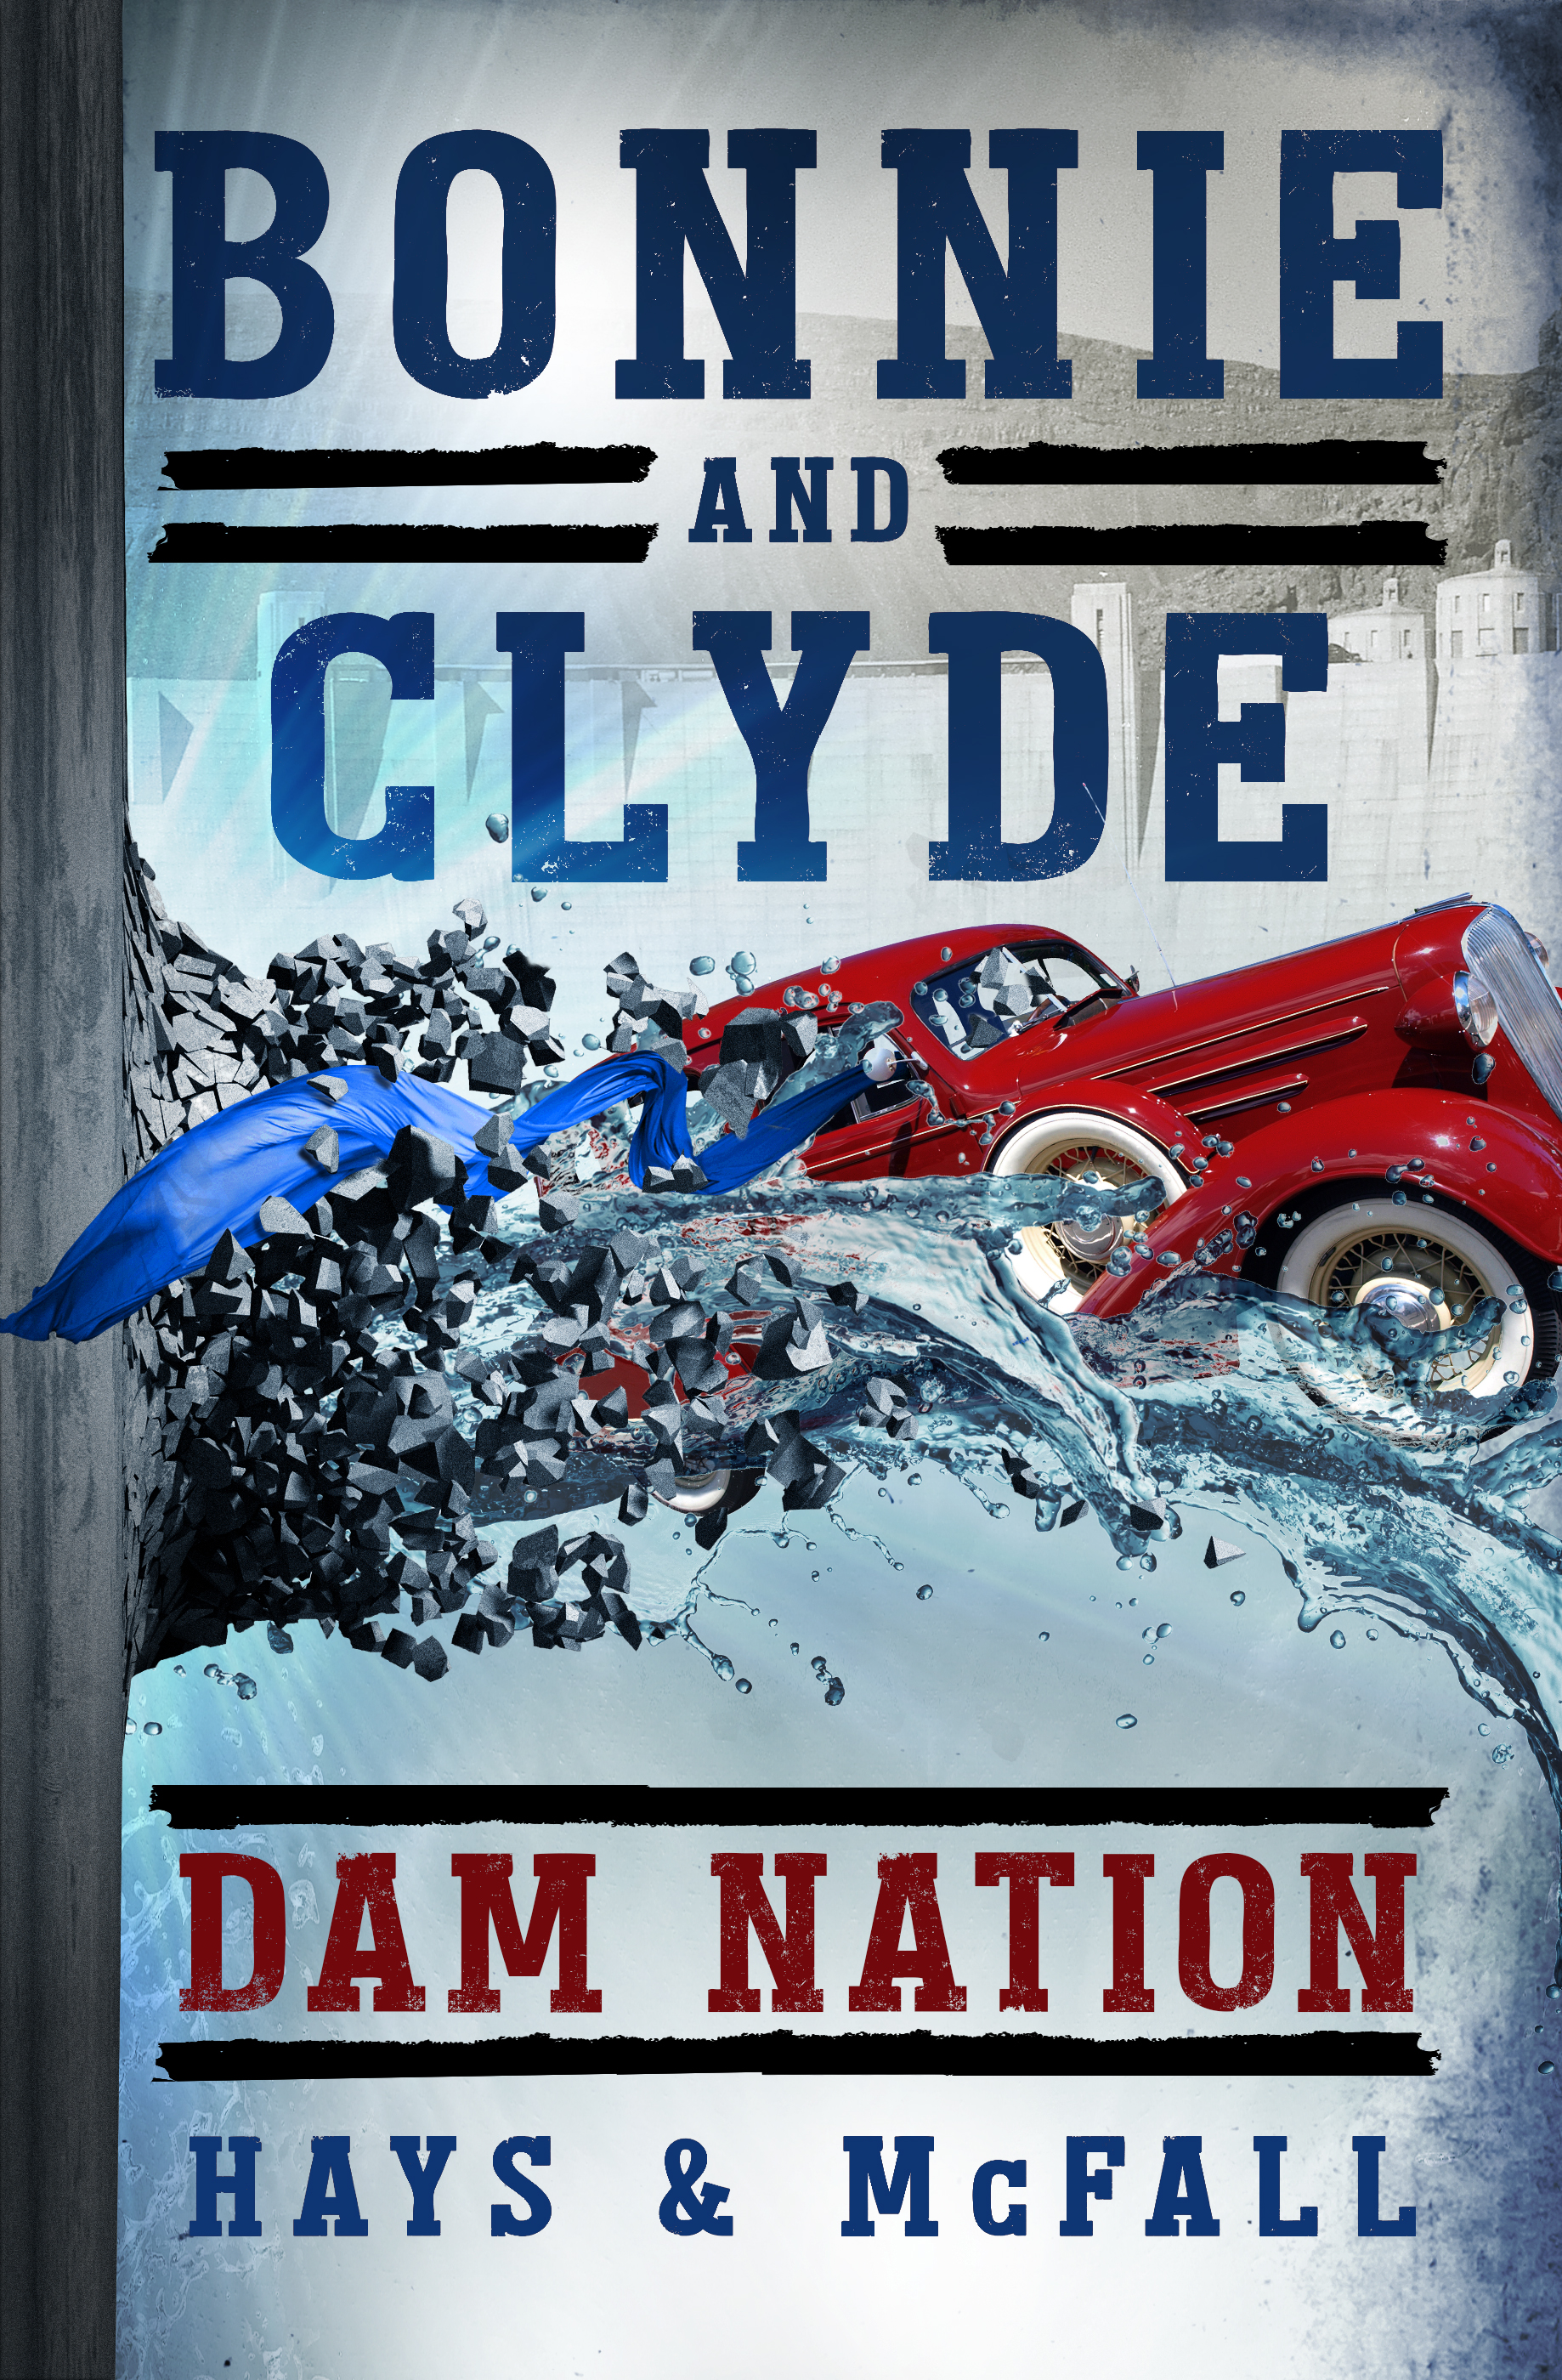 HR Bonnie and Clyde Dam Nation_Hays and McFall_DamNation_FrontCover_978-0-9974113-6-2.jpg